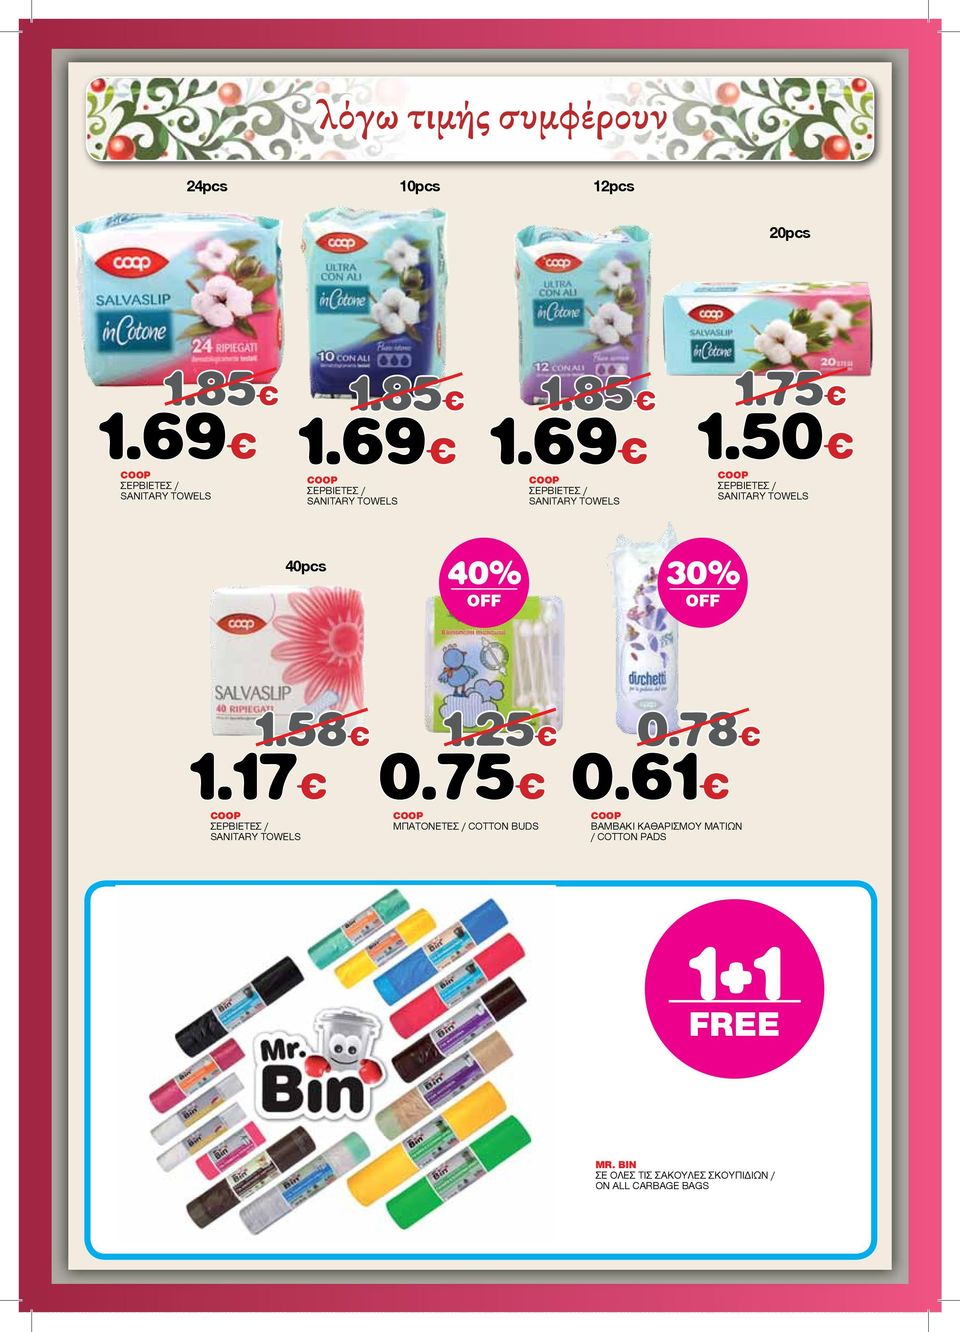 50 ΣΕΡΒΙΕΤΕΣ / SANITARY TOWELS 40pcs 1.58 1.25 0.78 1.17 0.75 0.